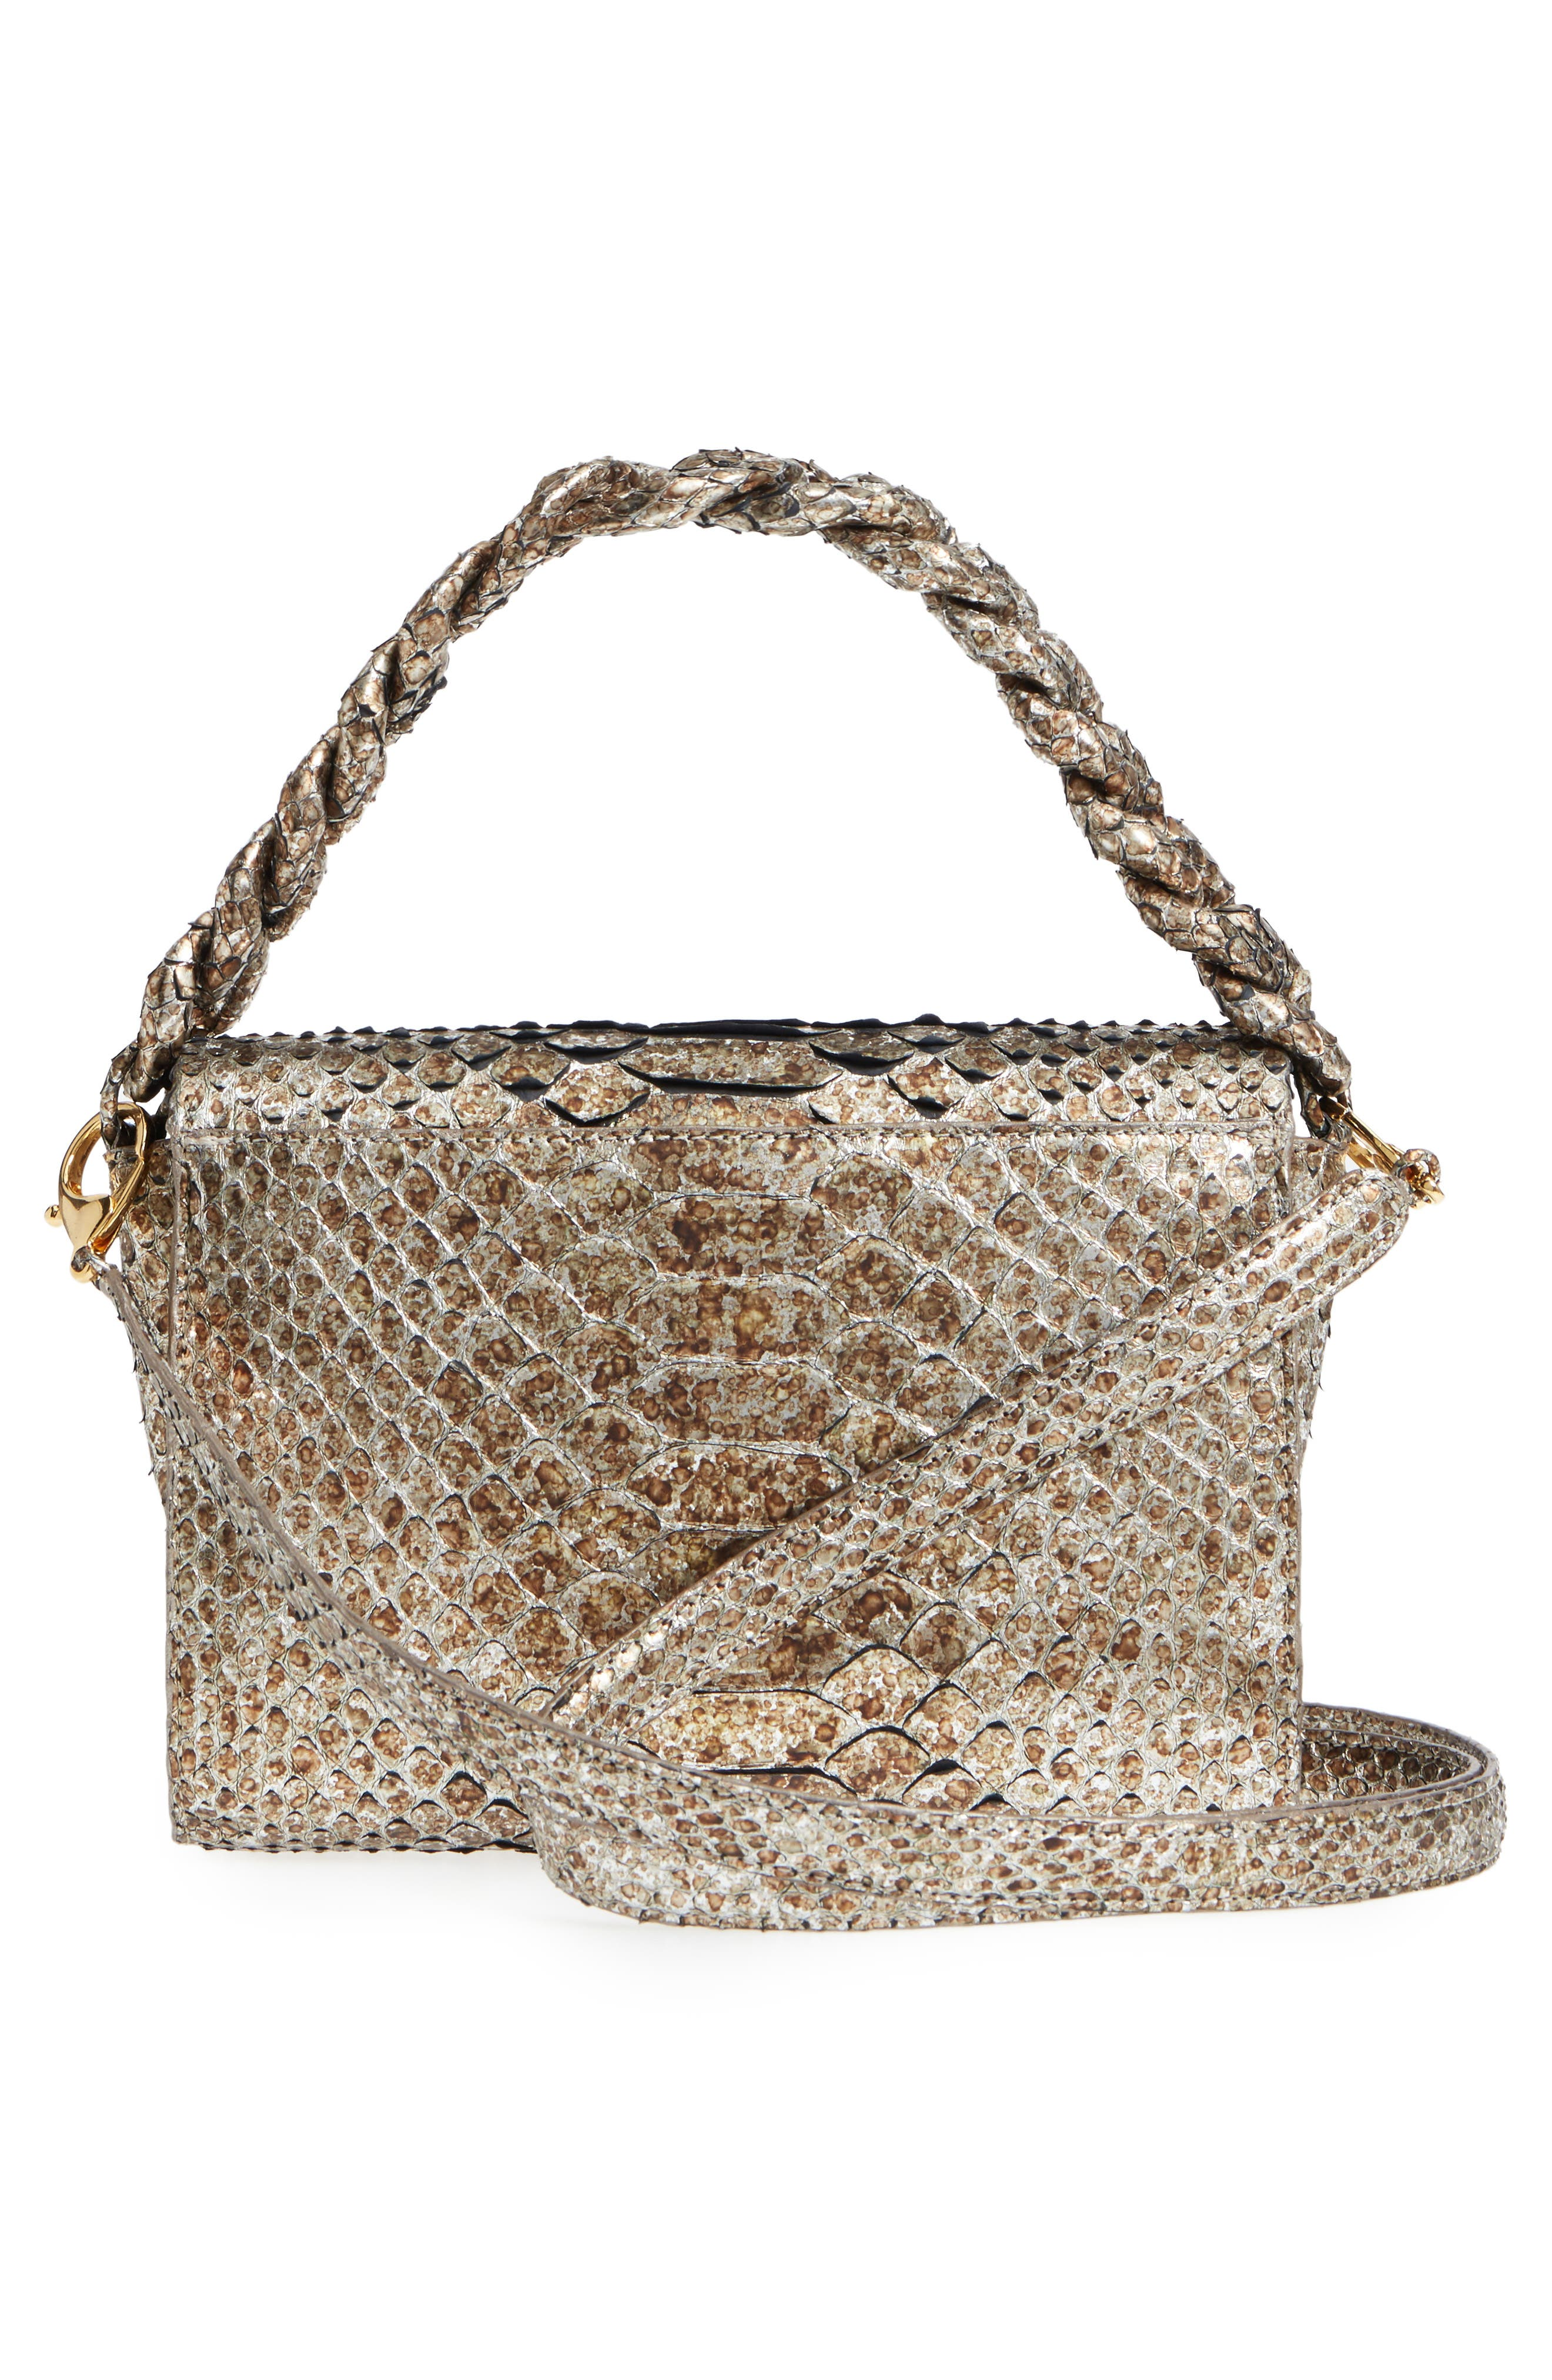 Small Carrie Genuine Crocodile Metallic Clutch,                             Alternate thumbnail 2, color,                             Metallic Gold